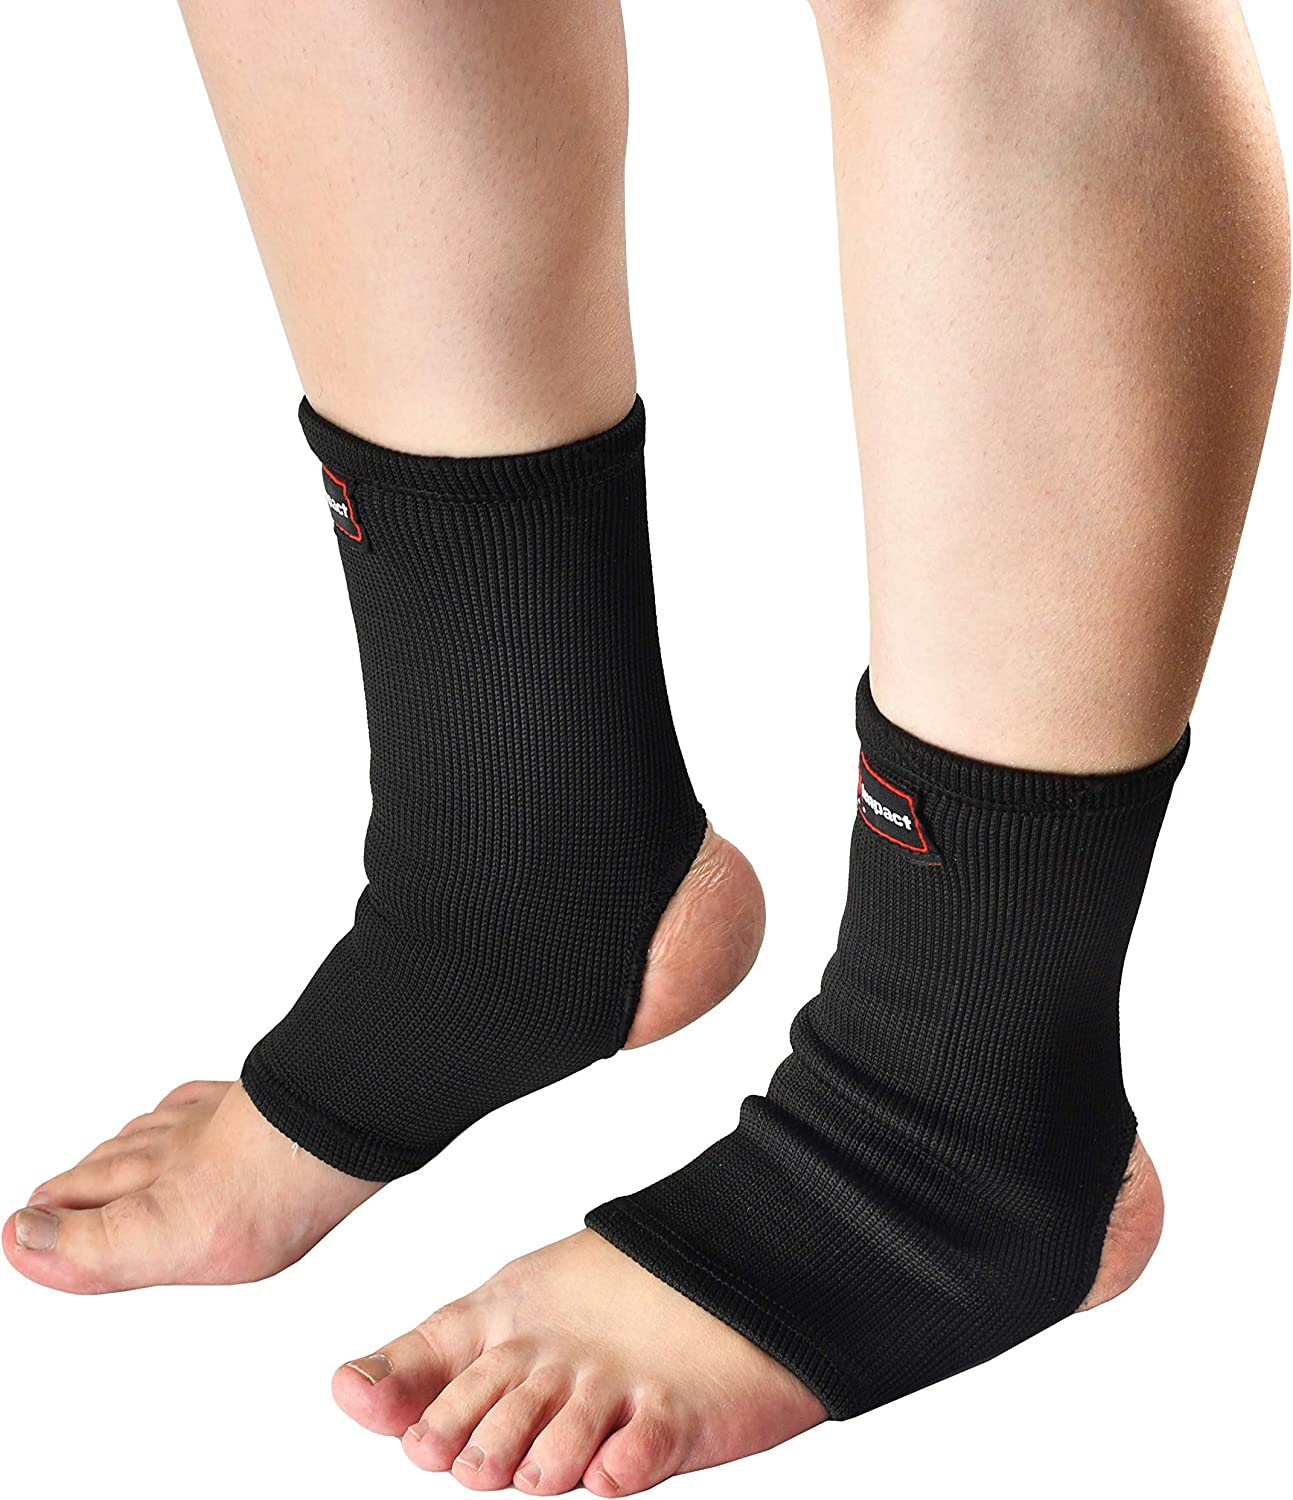 Pro Impact Muay Thai MMA Ankle Support Wraps - Breathable Ankle Guard Protection for Combat Sports - Ideal Gym & Workout Use – 1 Pair : Sports & Outdoors